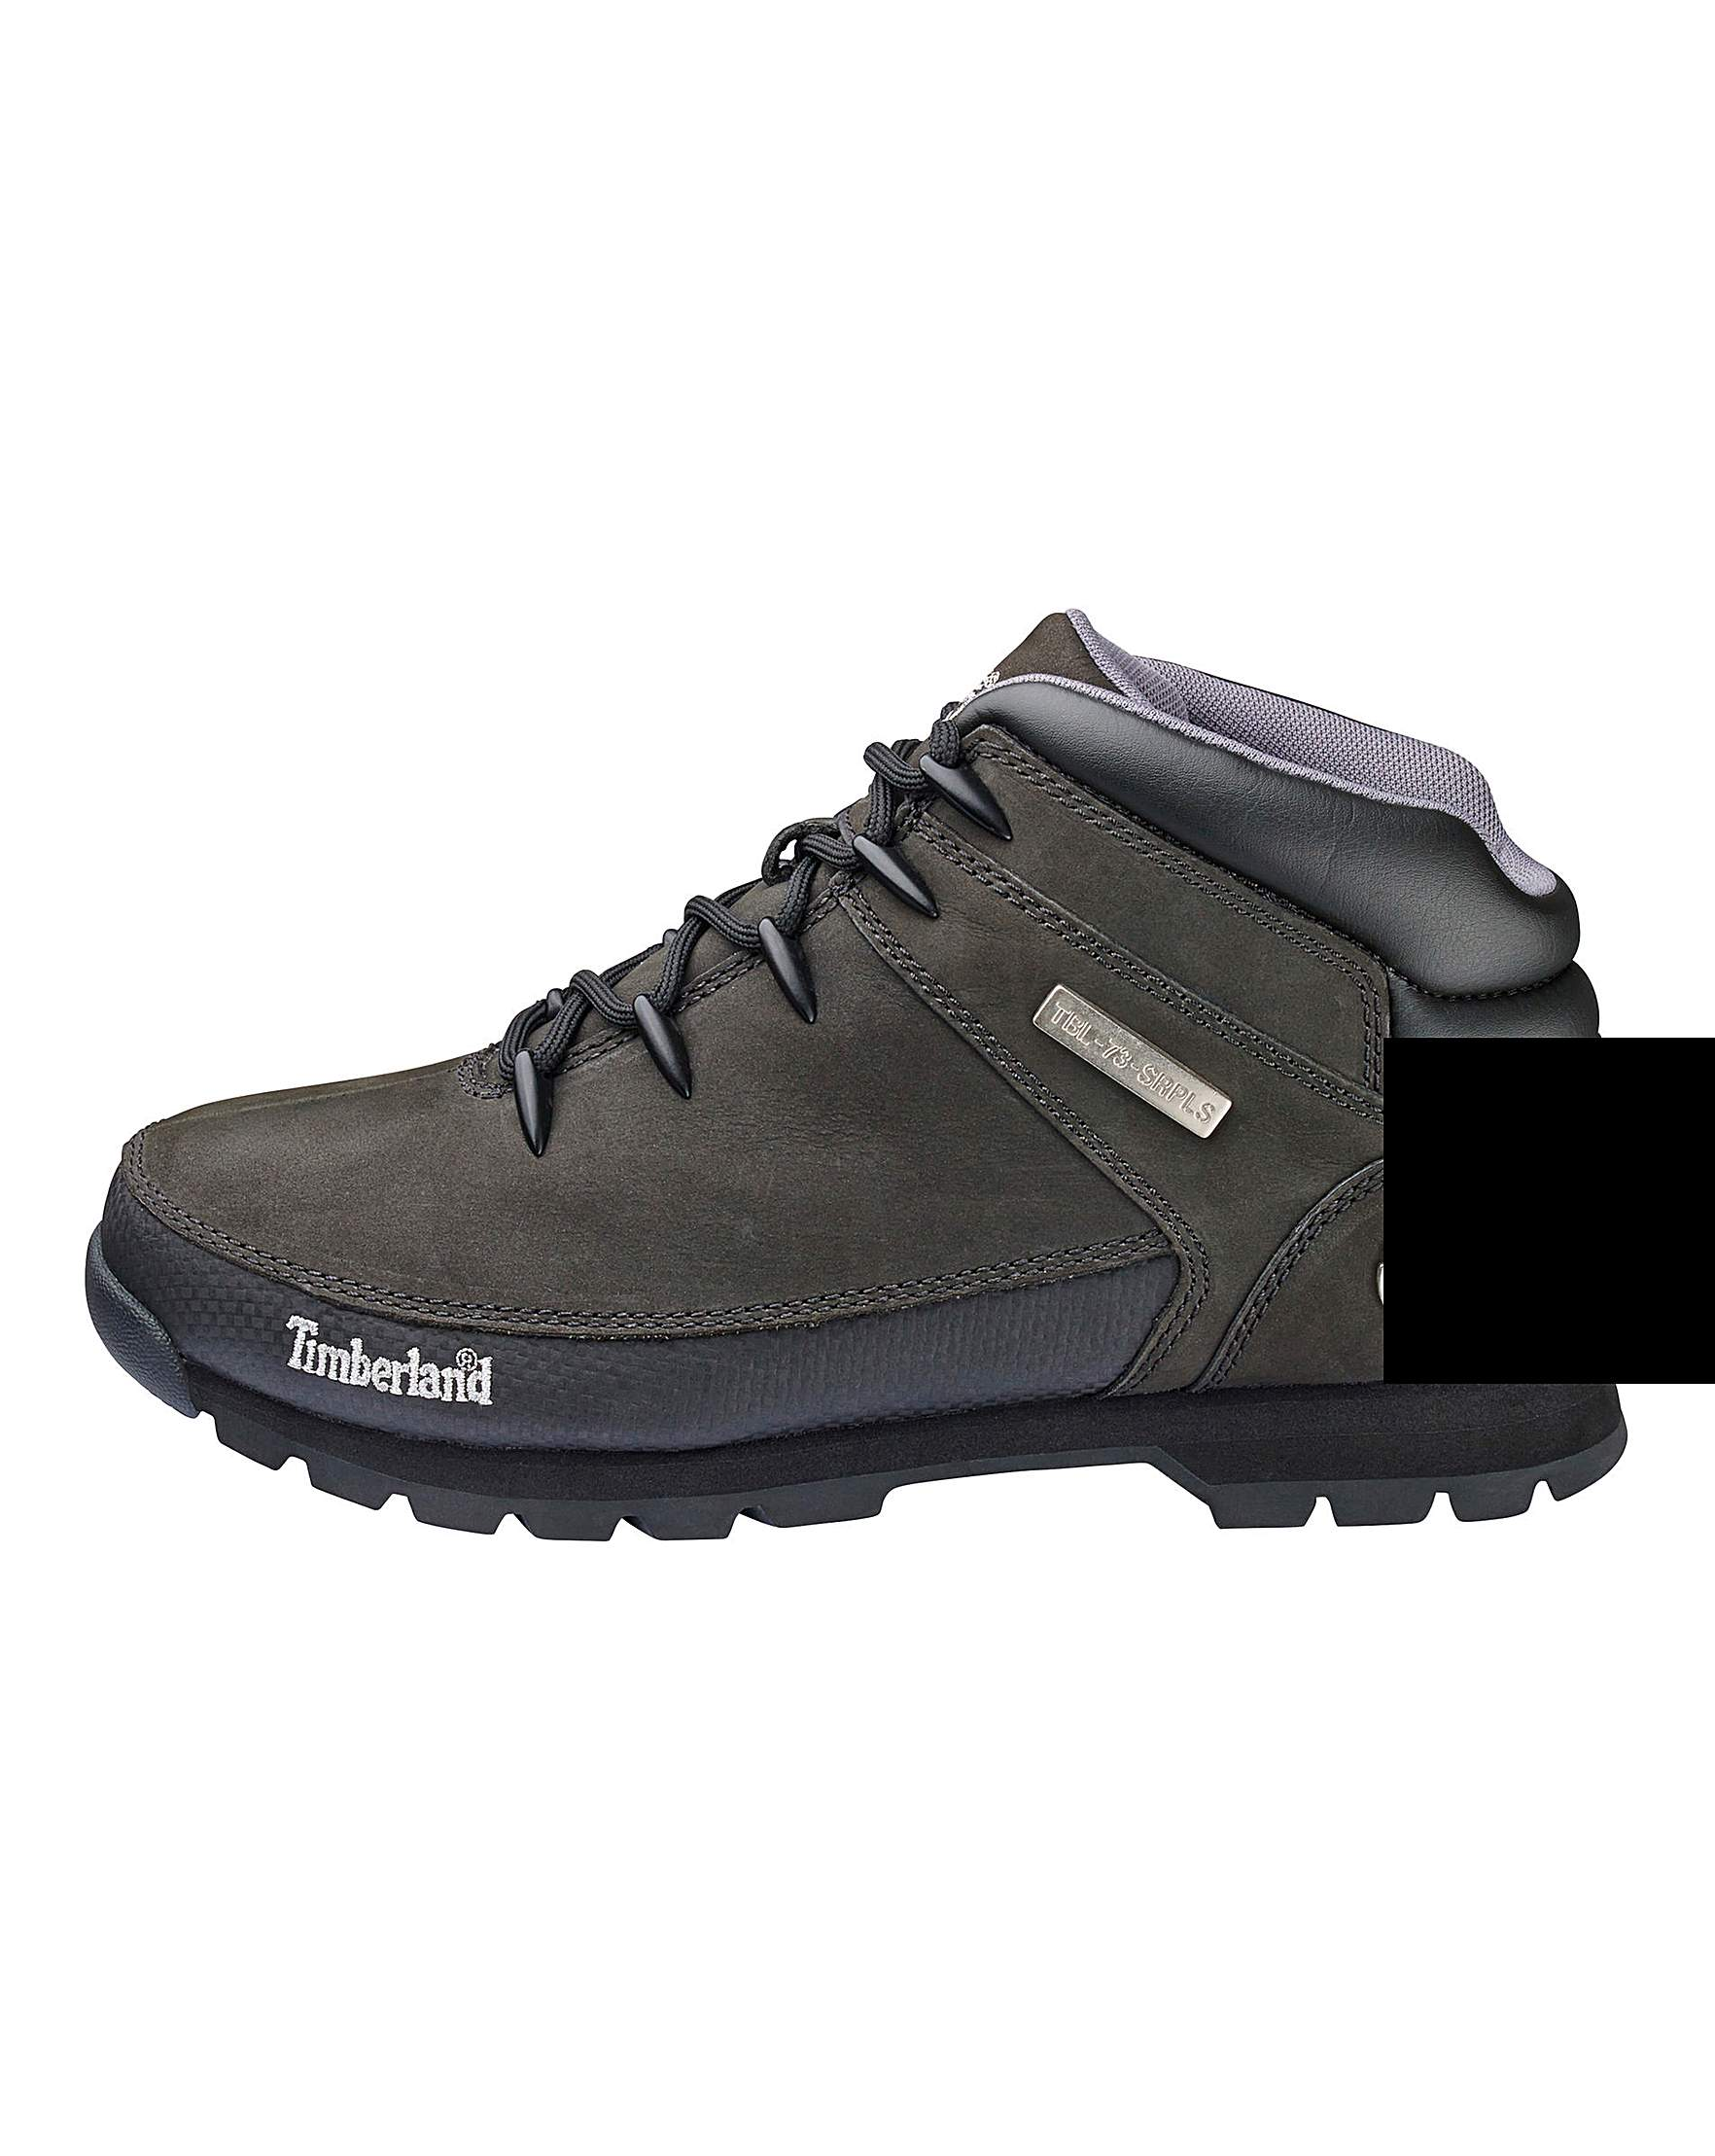 efedce8c644b Timberland Euro Sprint Hiker Boot